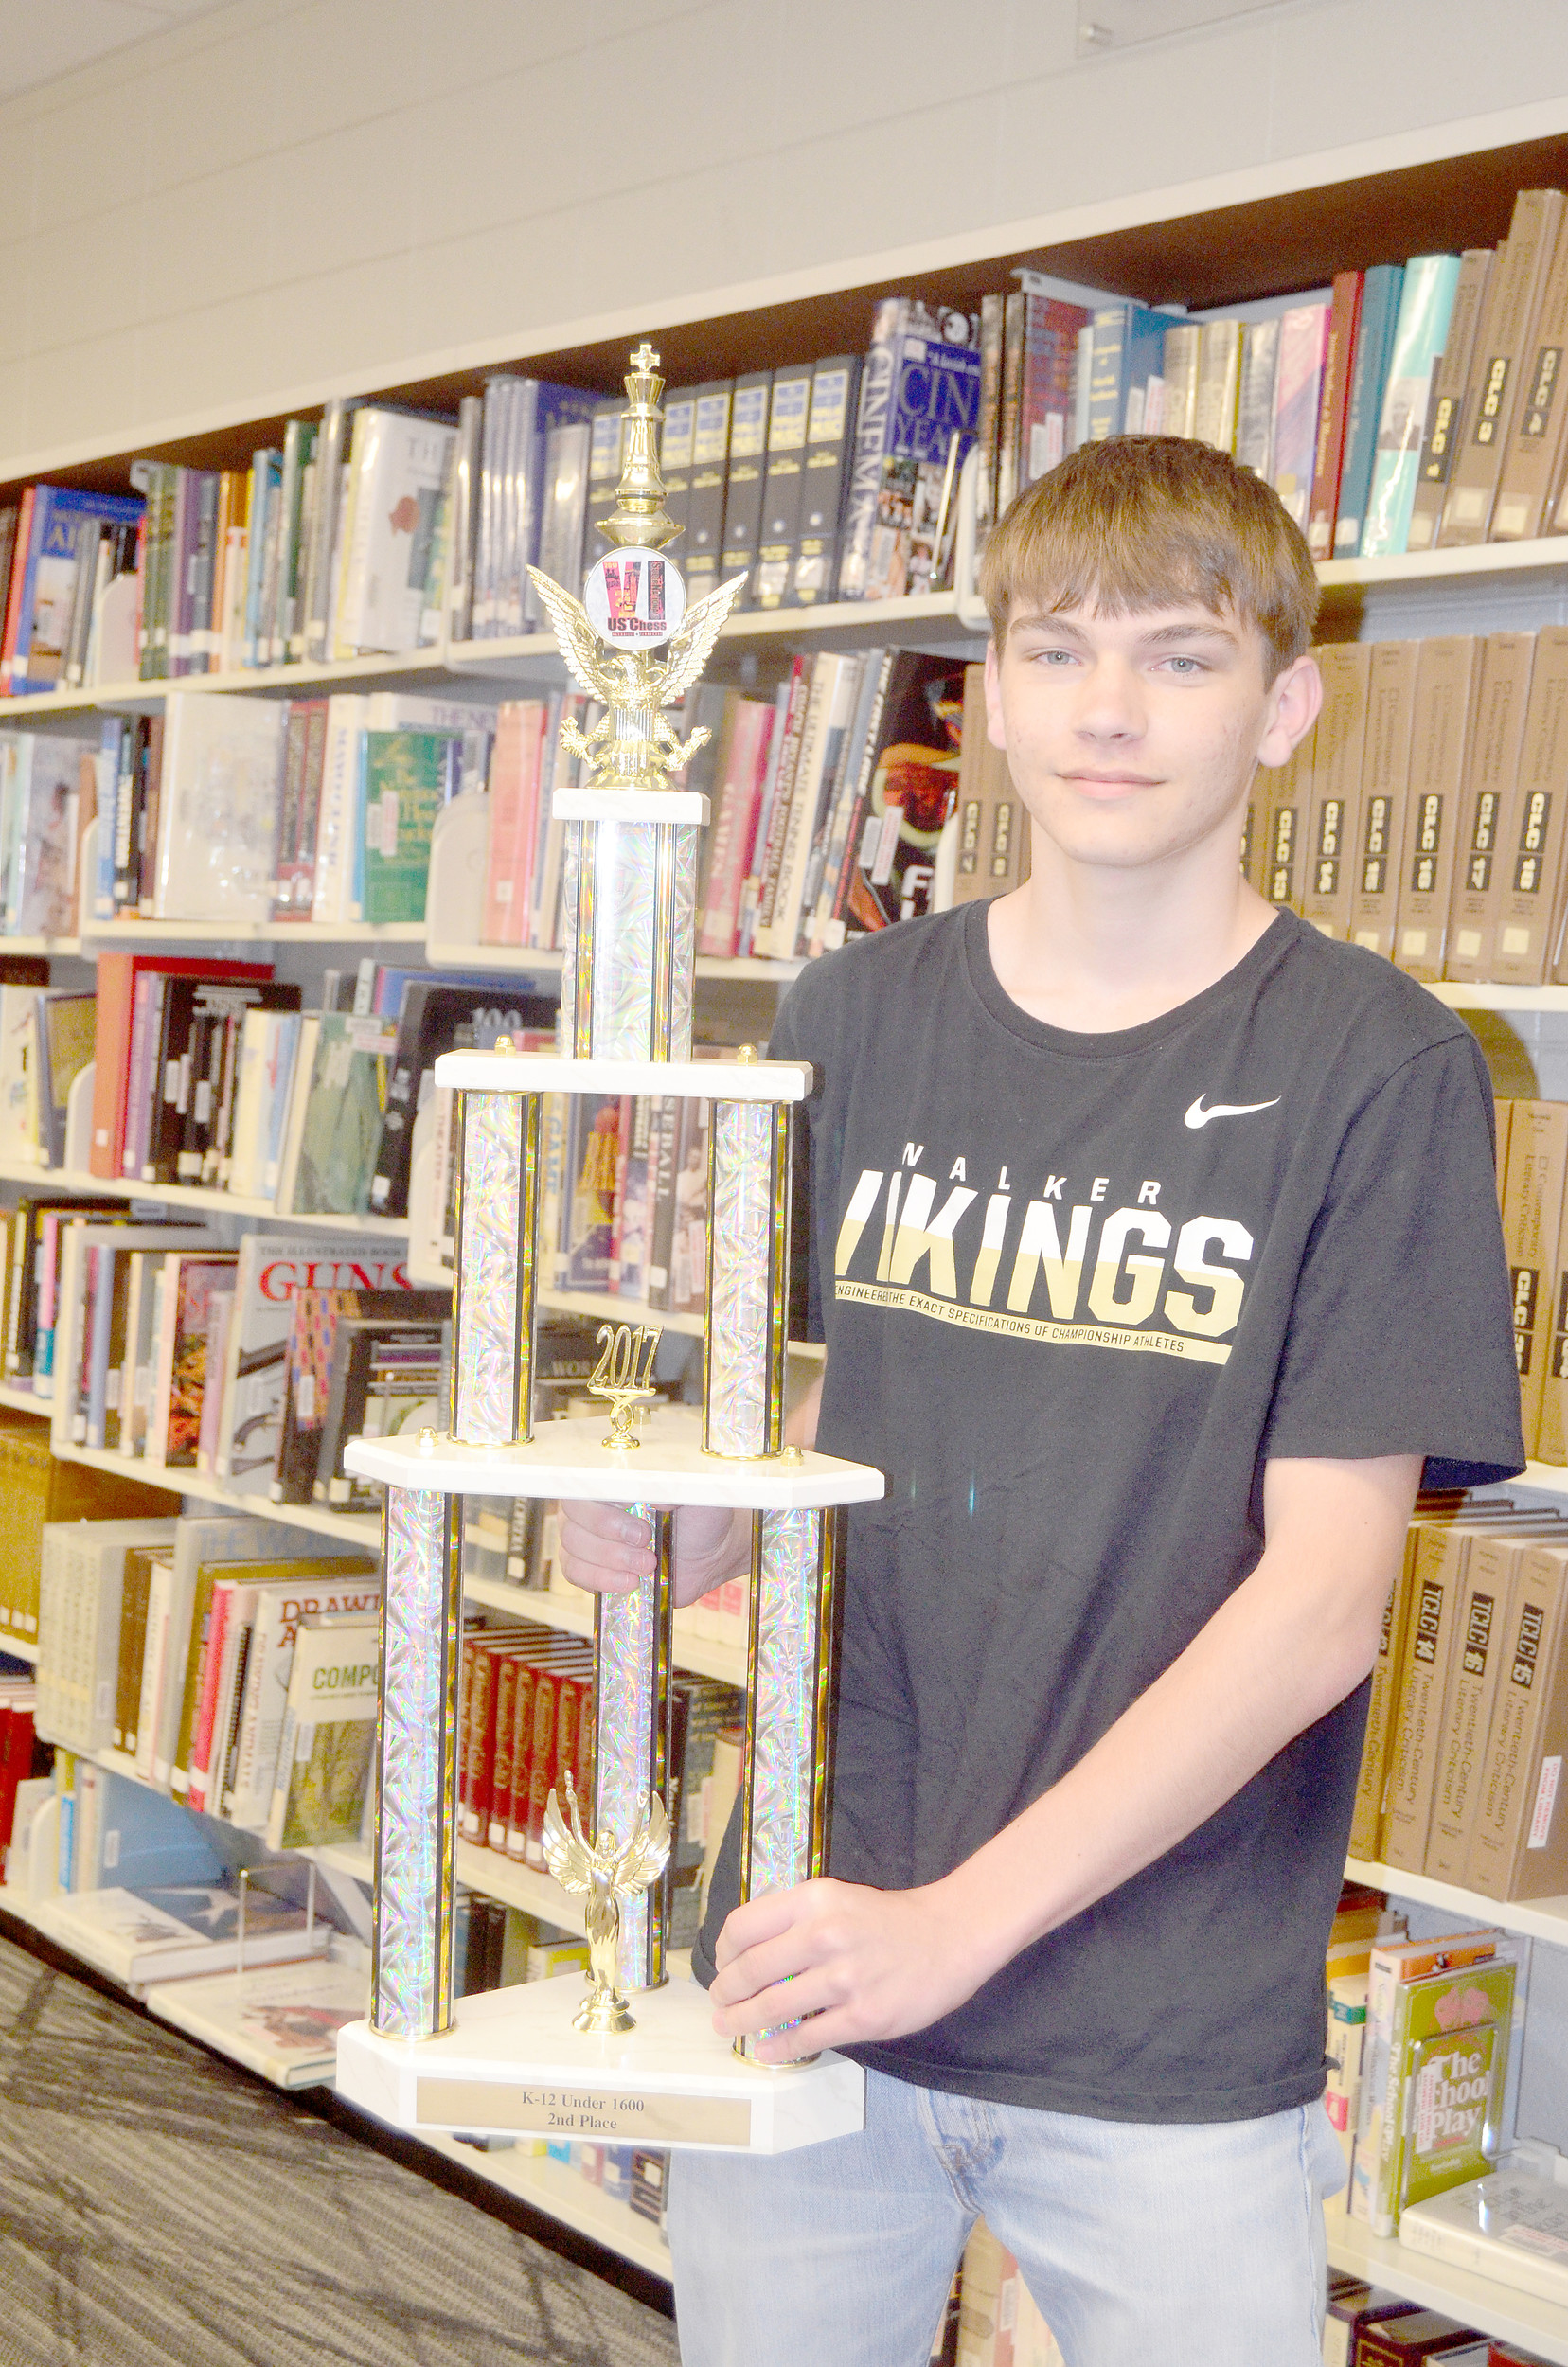 Jasper High School junior Calen Stewart poses with his second place trophy from the 2017 Chess SuperNationals. Stewart recently earned a perfect score of 36 on the ACT — a feat only a few students achieve each year. Daily Mountain Eagle - Lea Rizzo